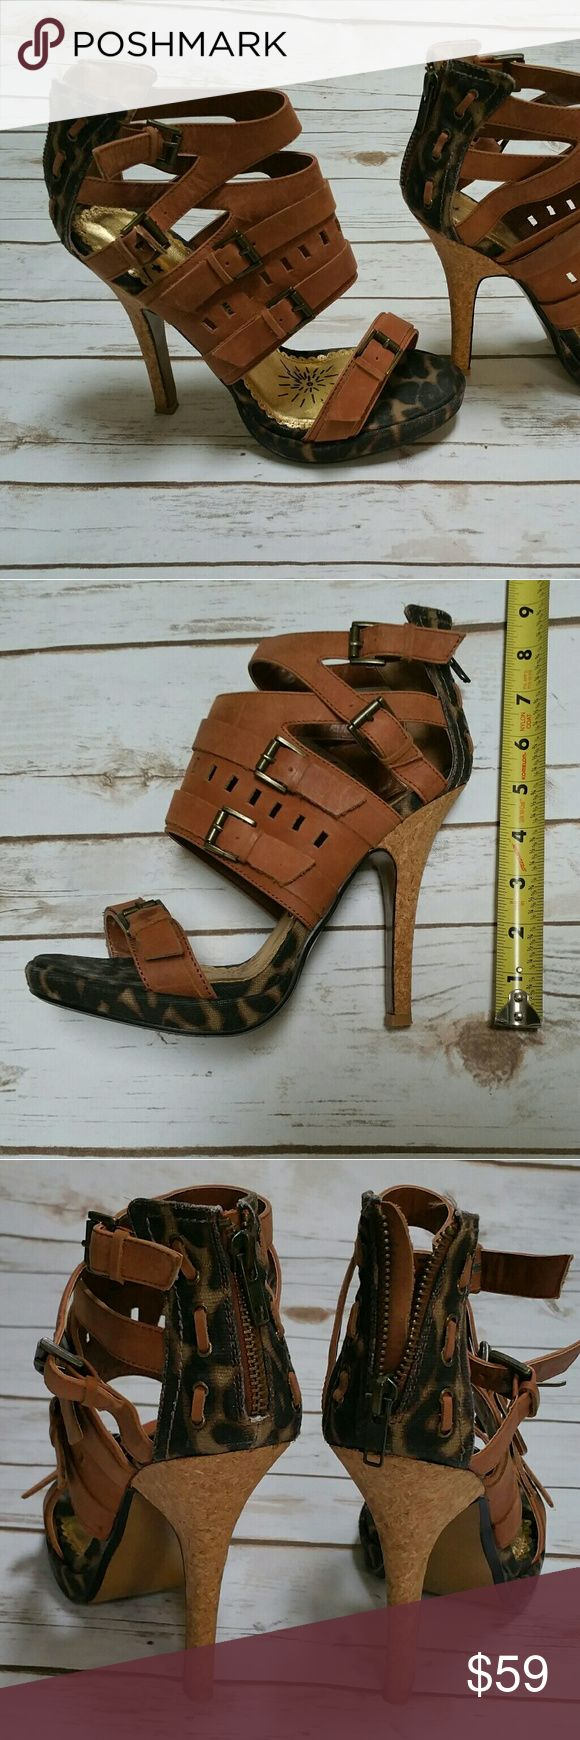 Naughty Monkey Gladiator Heeled Sandals Worn once. Like new condition. Size 8. Tan upper,  animal print sole,  cork look heels. naughty monkey Shoes Heels